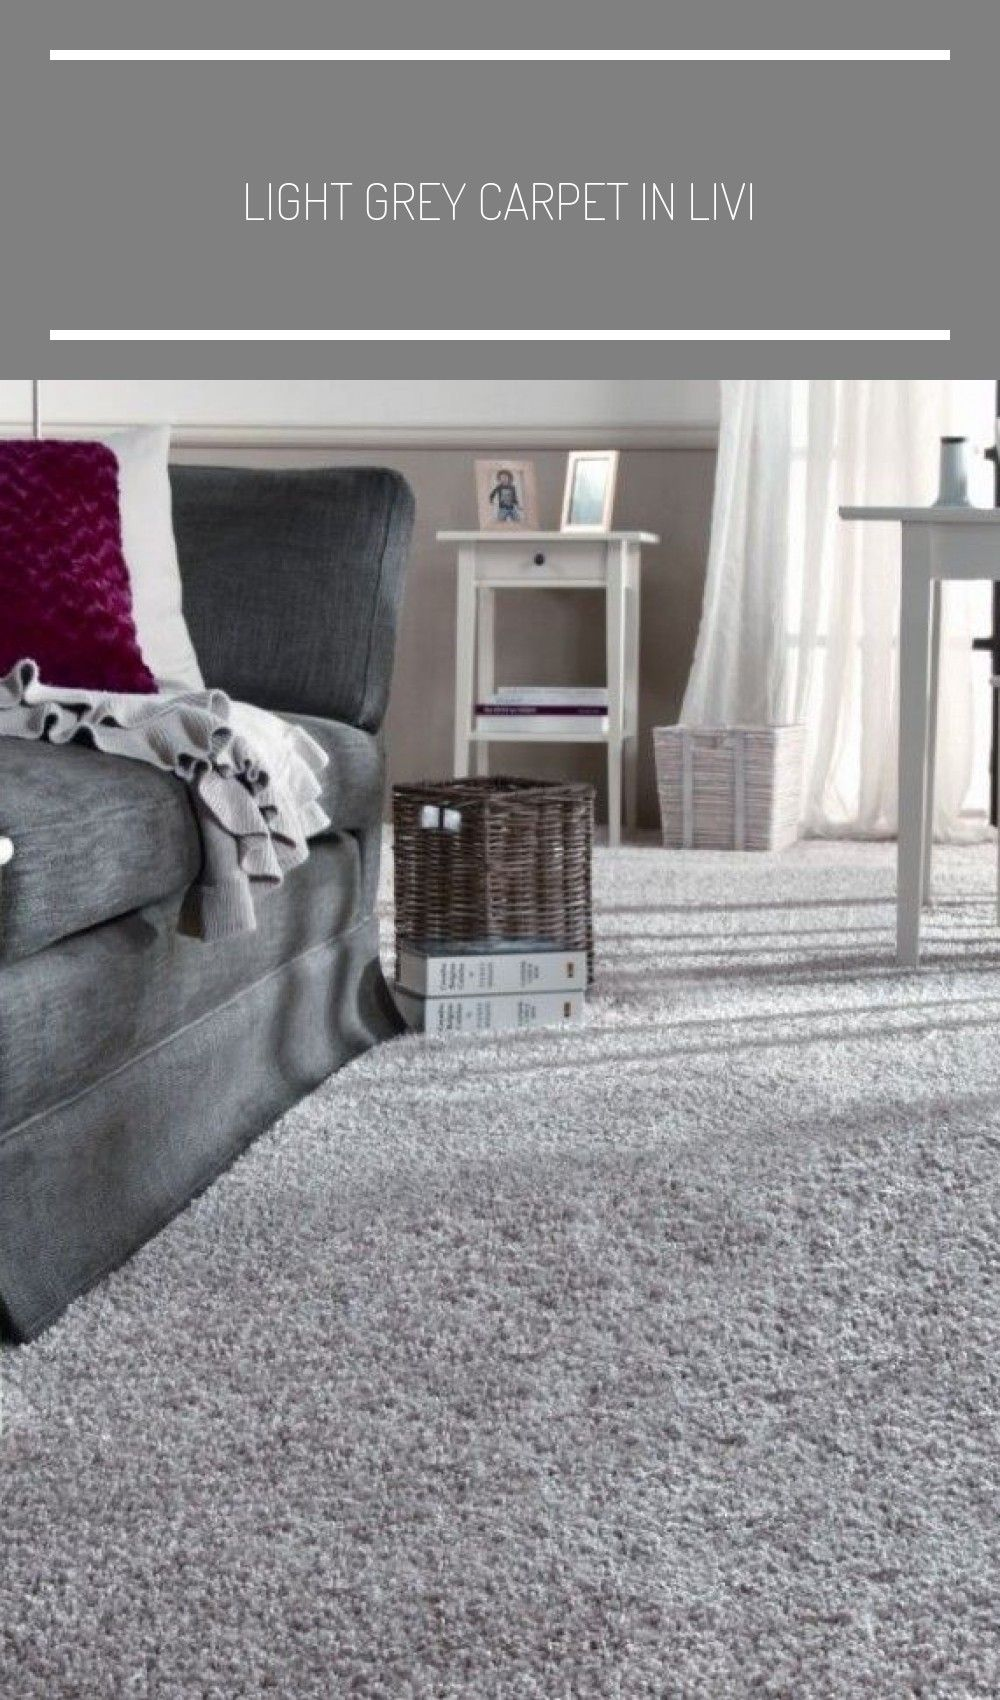 Light Grey Carpet In Livi Em 2020